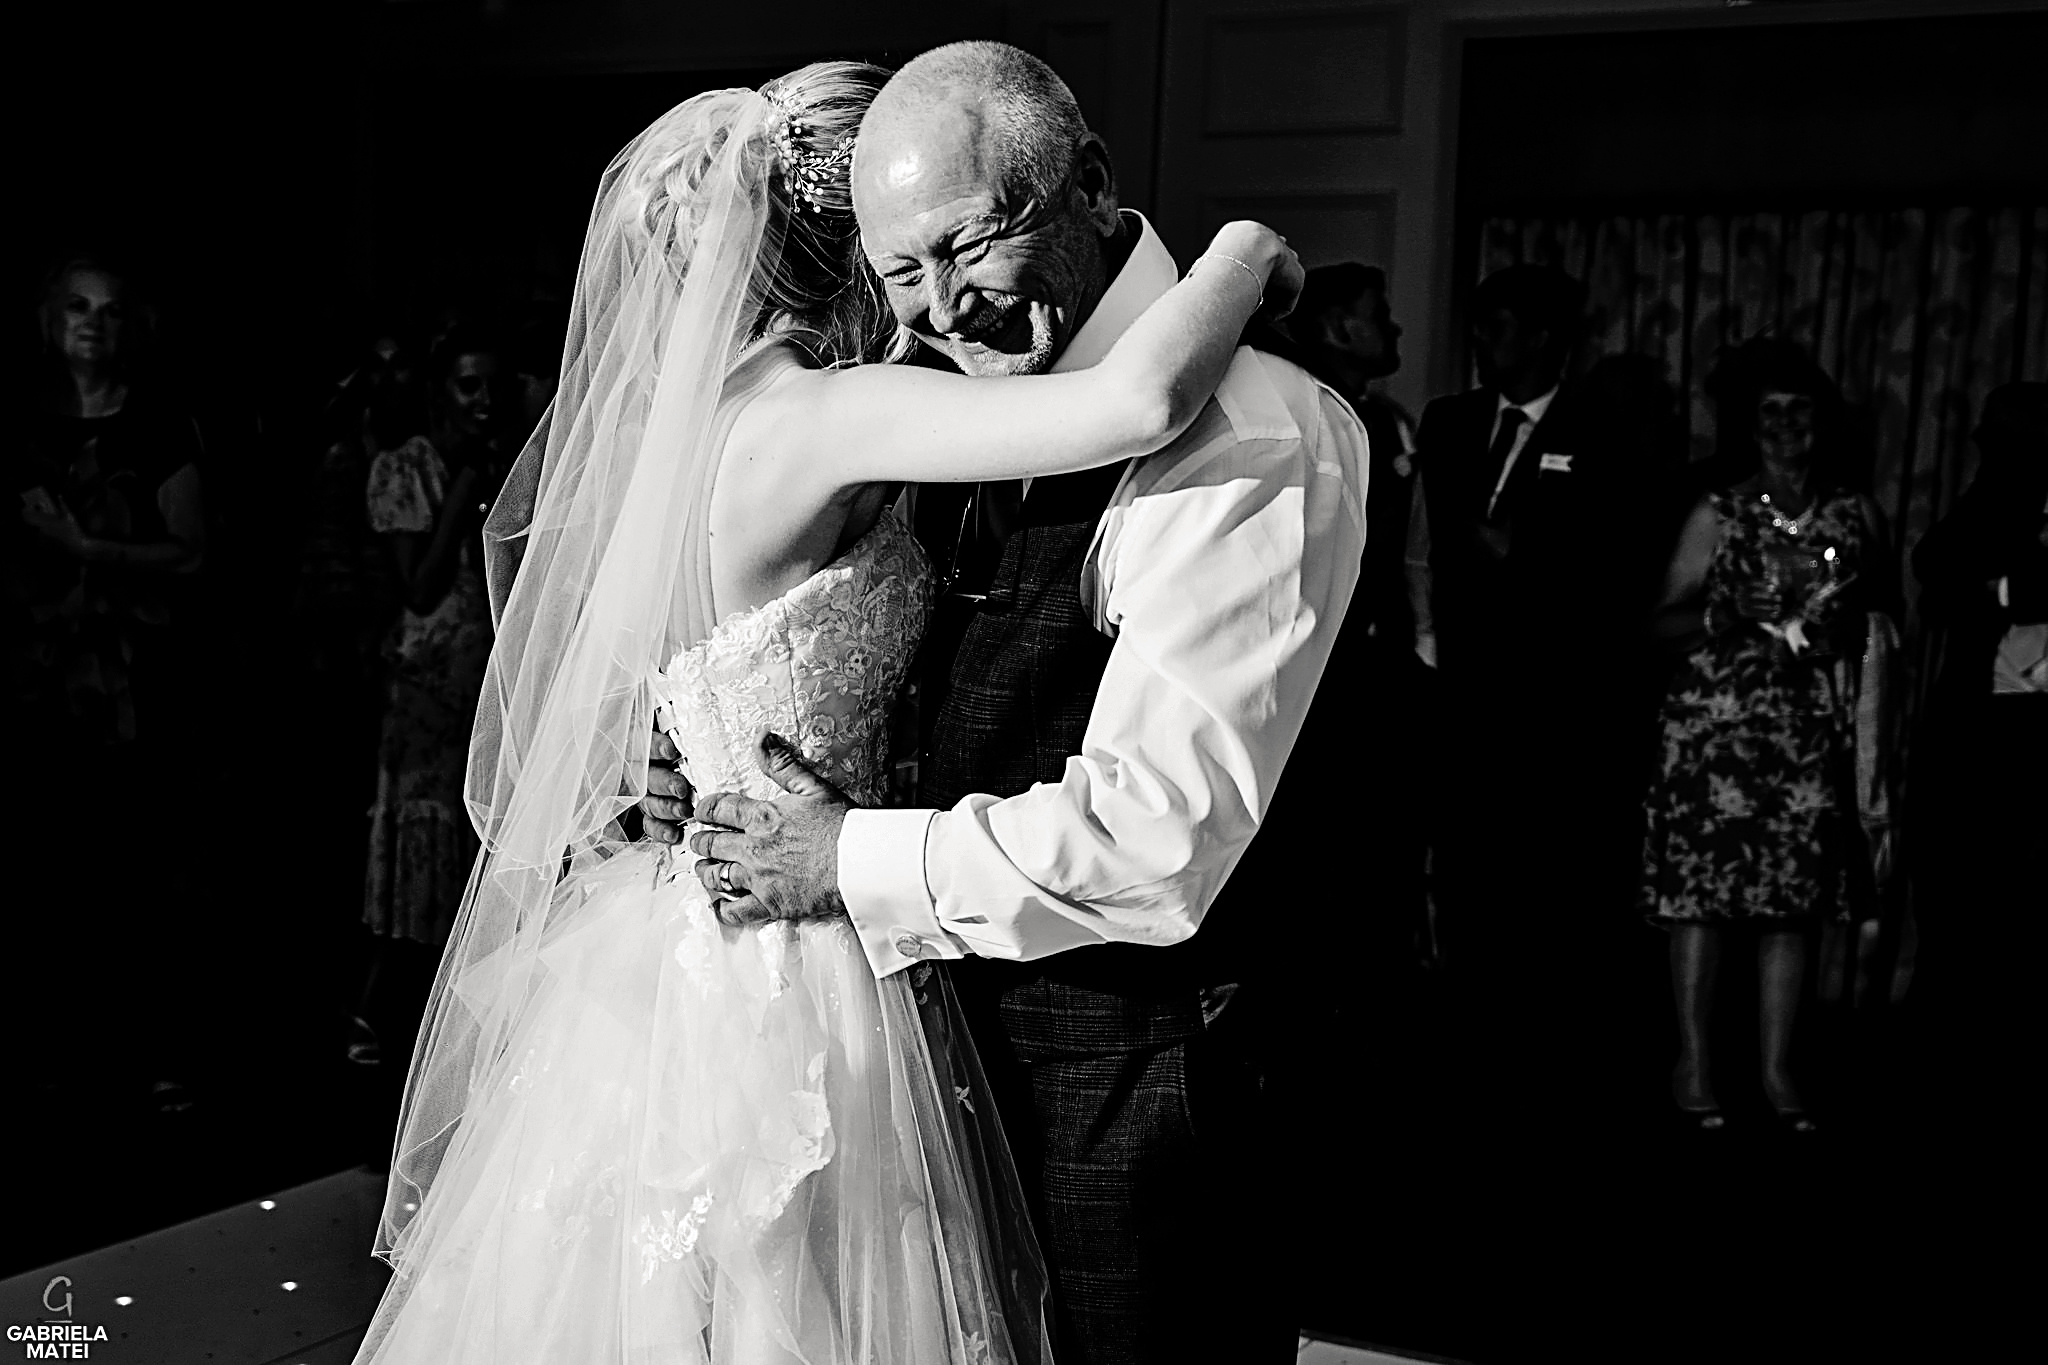 Emotional father daughter dance at wedding reception in London